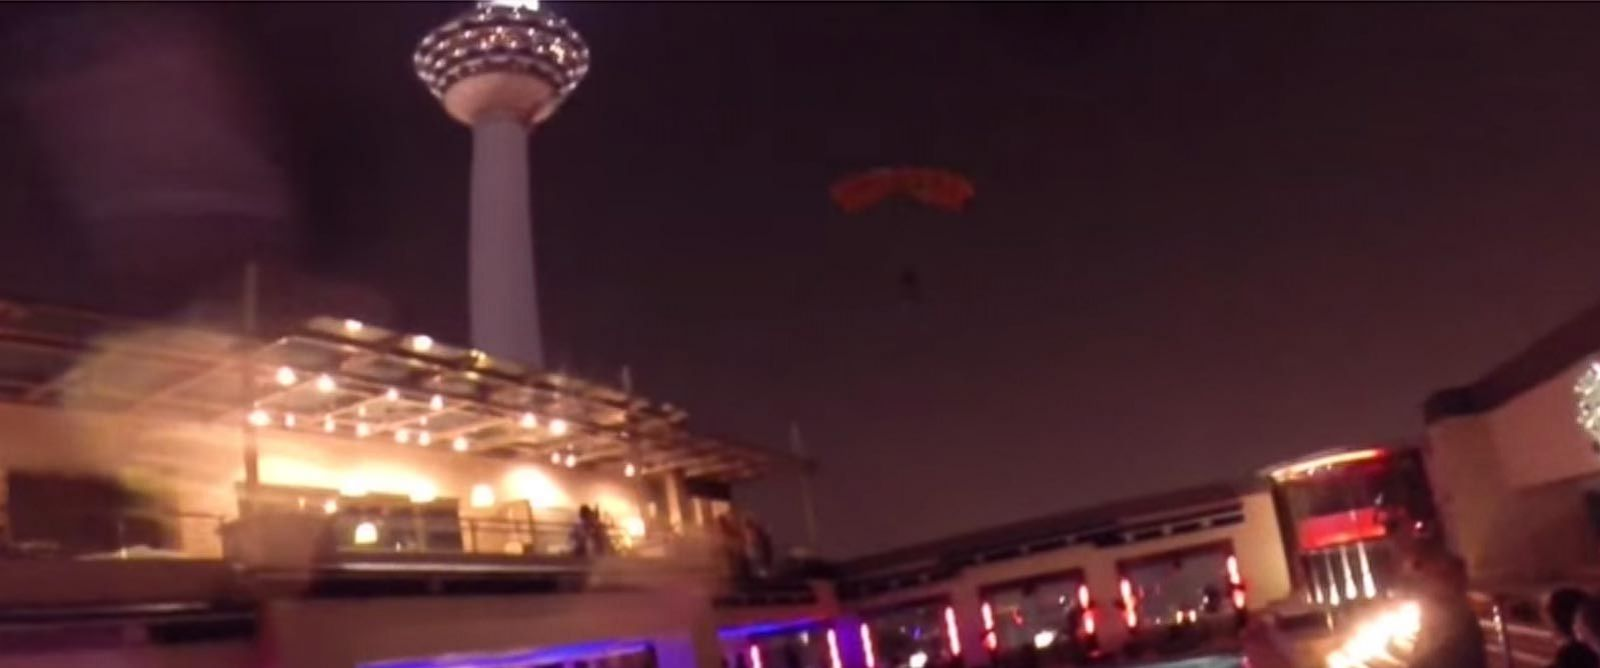 PHOTO: A base jumpers parachute can be seen between the Kuala Lumpur tower from where he jumped and the swimming pool where he landed shortly after in this screen grab from a video posted to YouTube, Oct. 4, 2014.